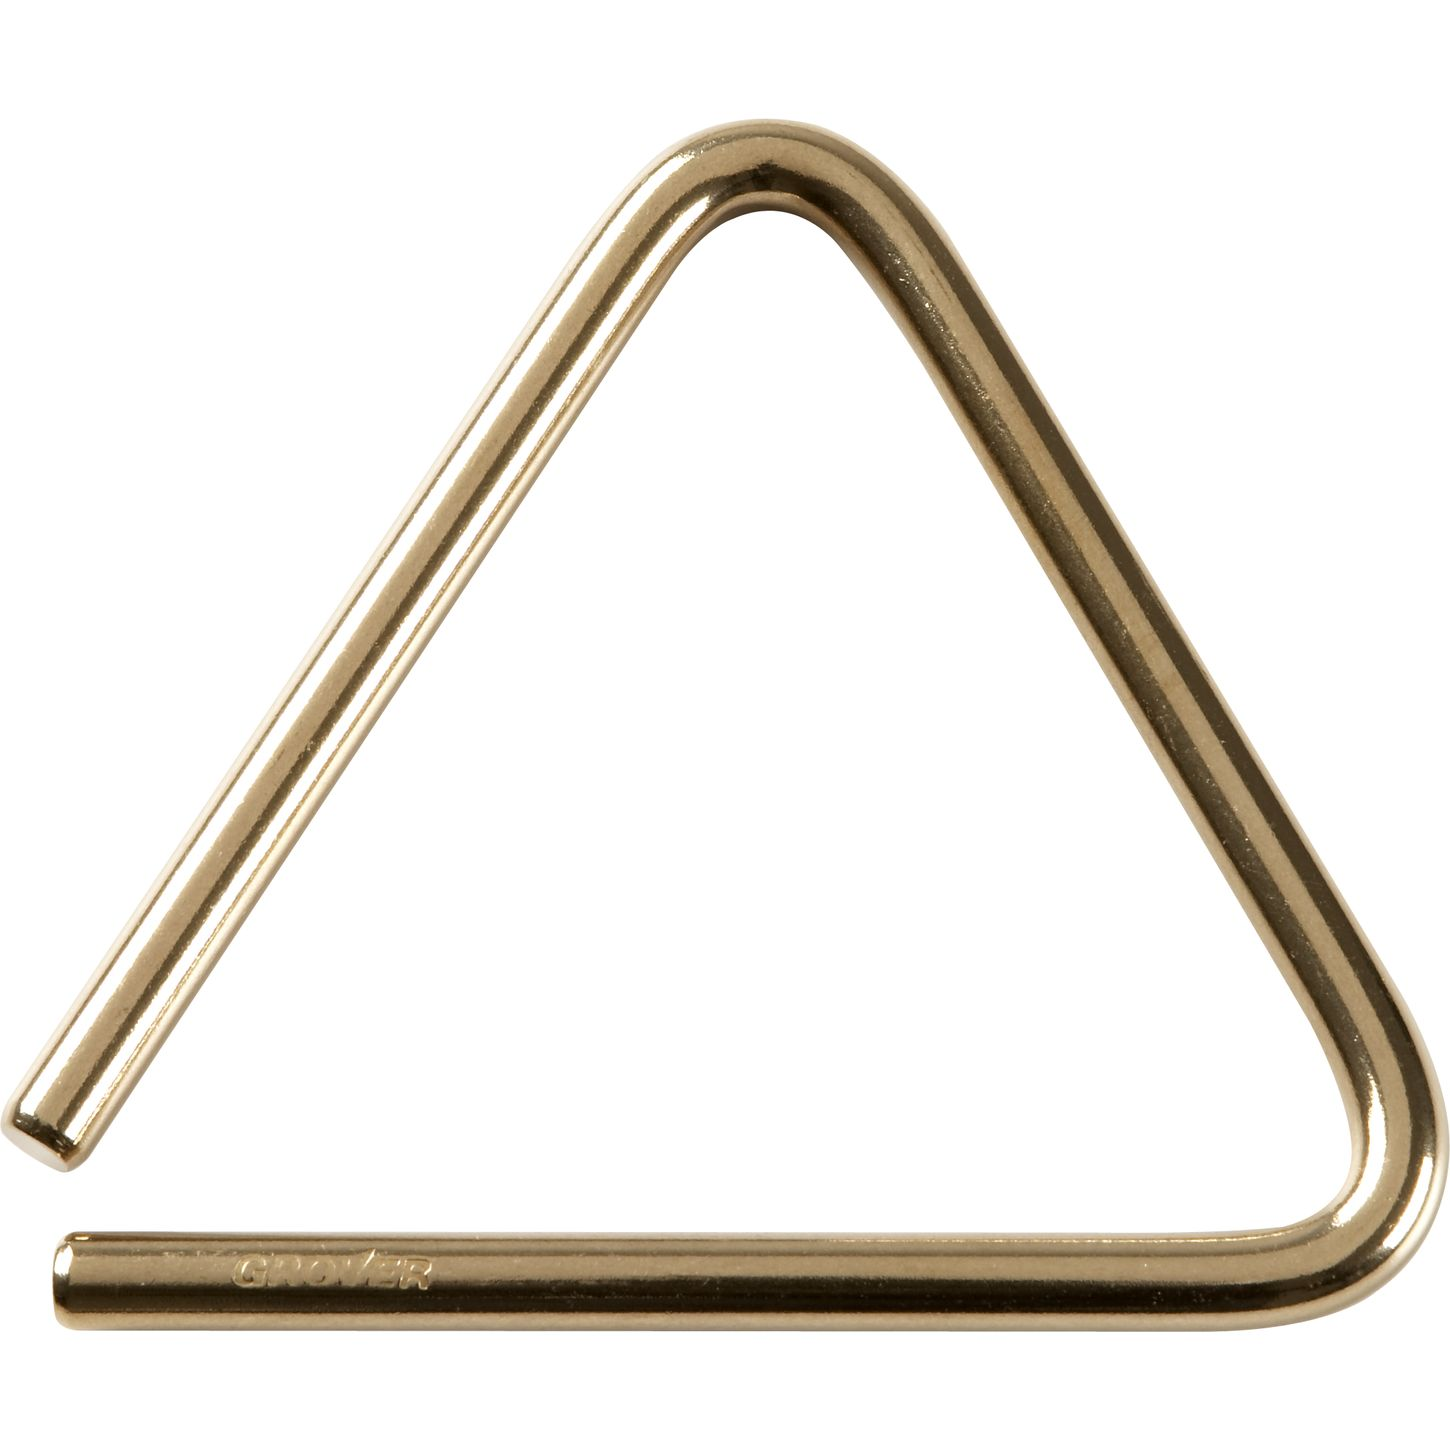 "Grover Pro 7"" Bronze Symphonic Triangle"